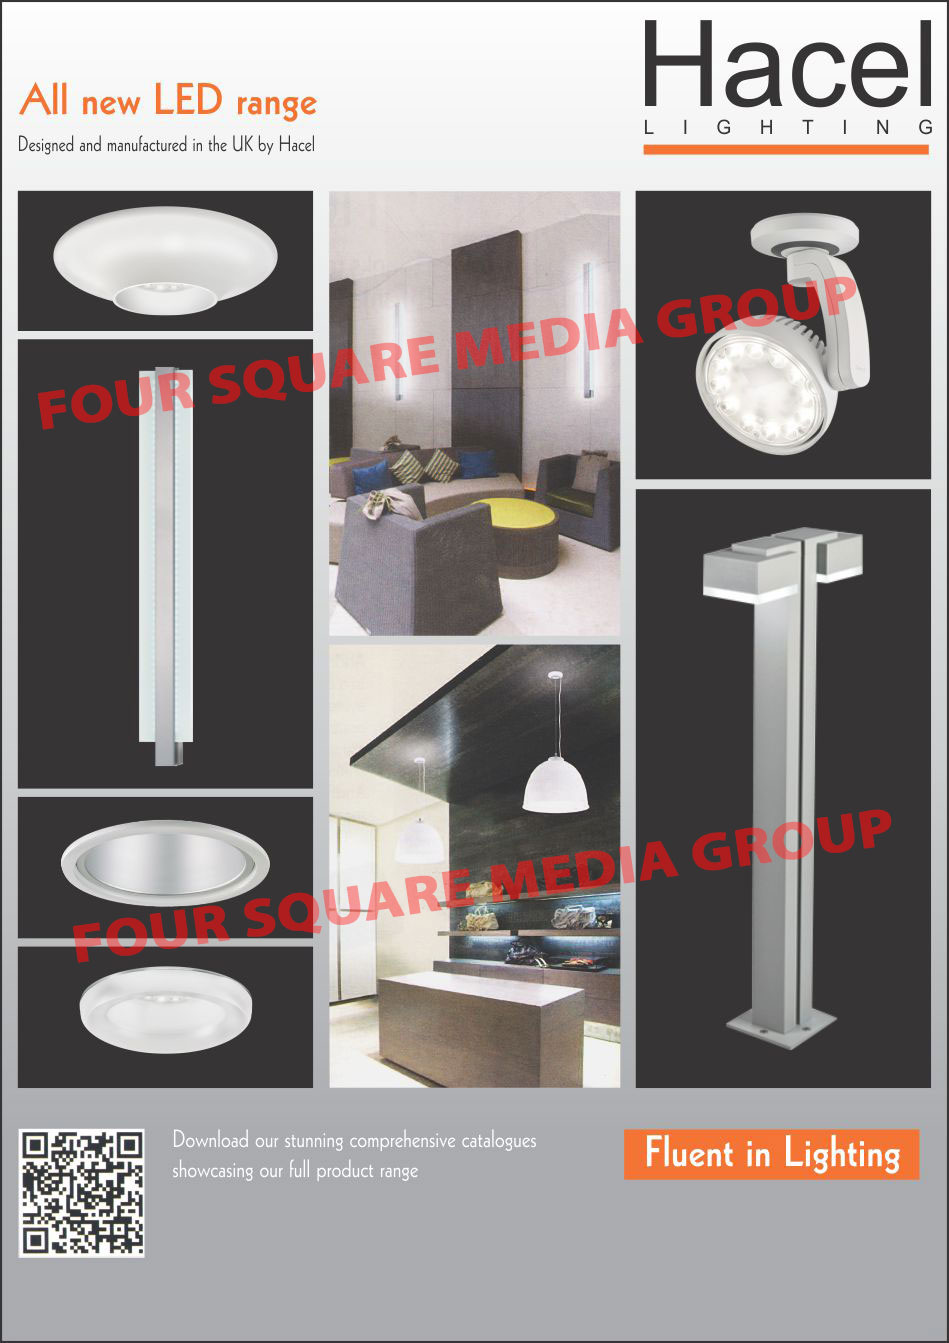 LED Lights,LED Products, Luminarires, Down Lighters, Wall Lights, Modular Systems, Wiring Systems